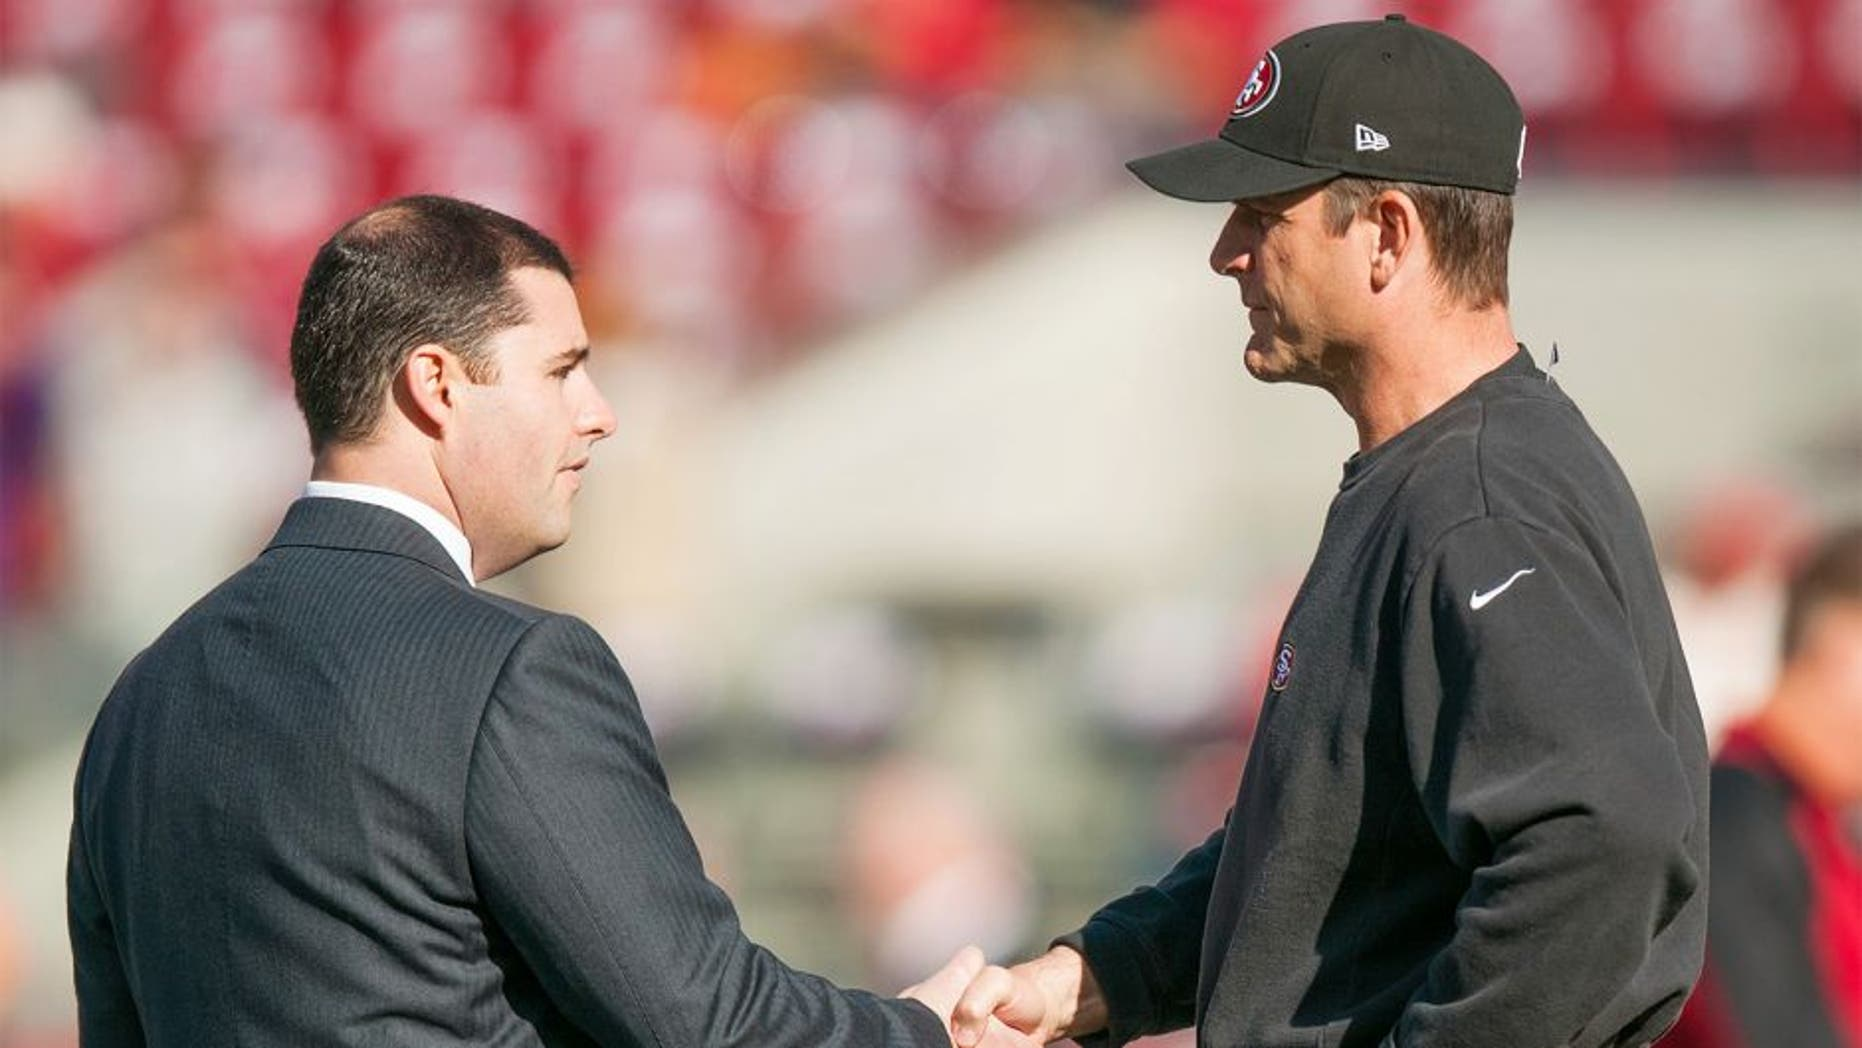 Dec 28, 2014; Santa Clara, CA, USA; San Francisco 49ers chief executive officer Jed York (left) shakes hands with head coach Jim Harbaugh (right) before the game against the Arizona Cardinals at Levi's Stadium. Mandatory Credit: Ed Szczepanski-USA TODAY Sports